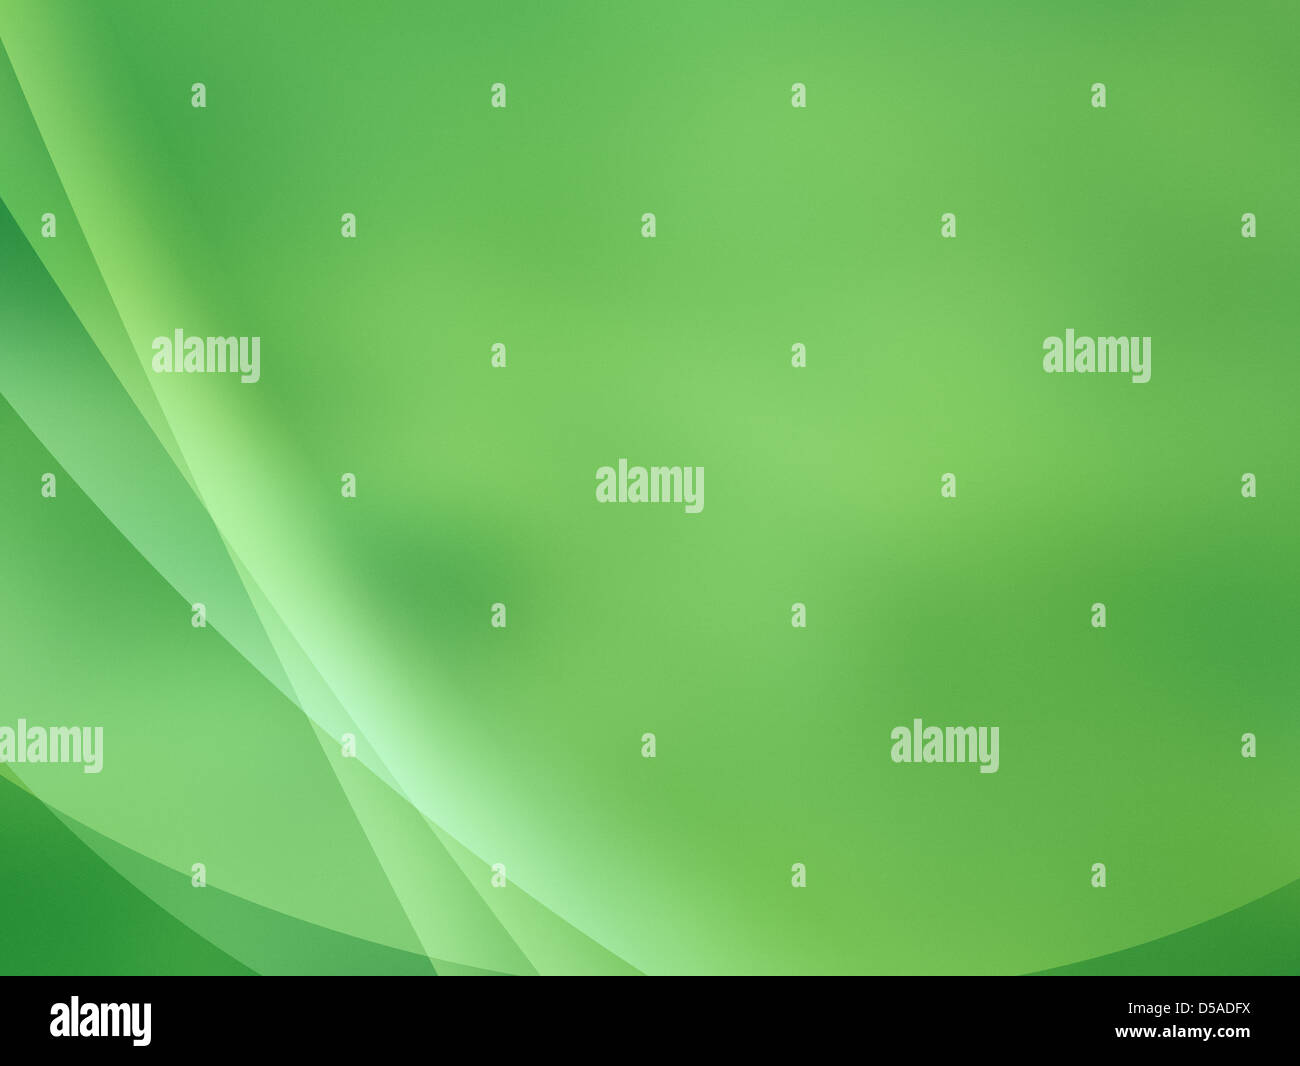 Abstract backgrounds with glowing lines for your design - Stock Image